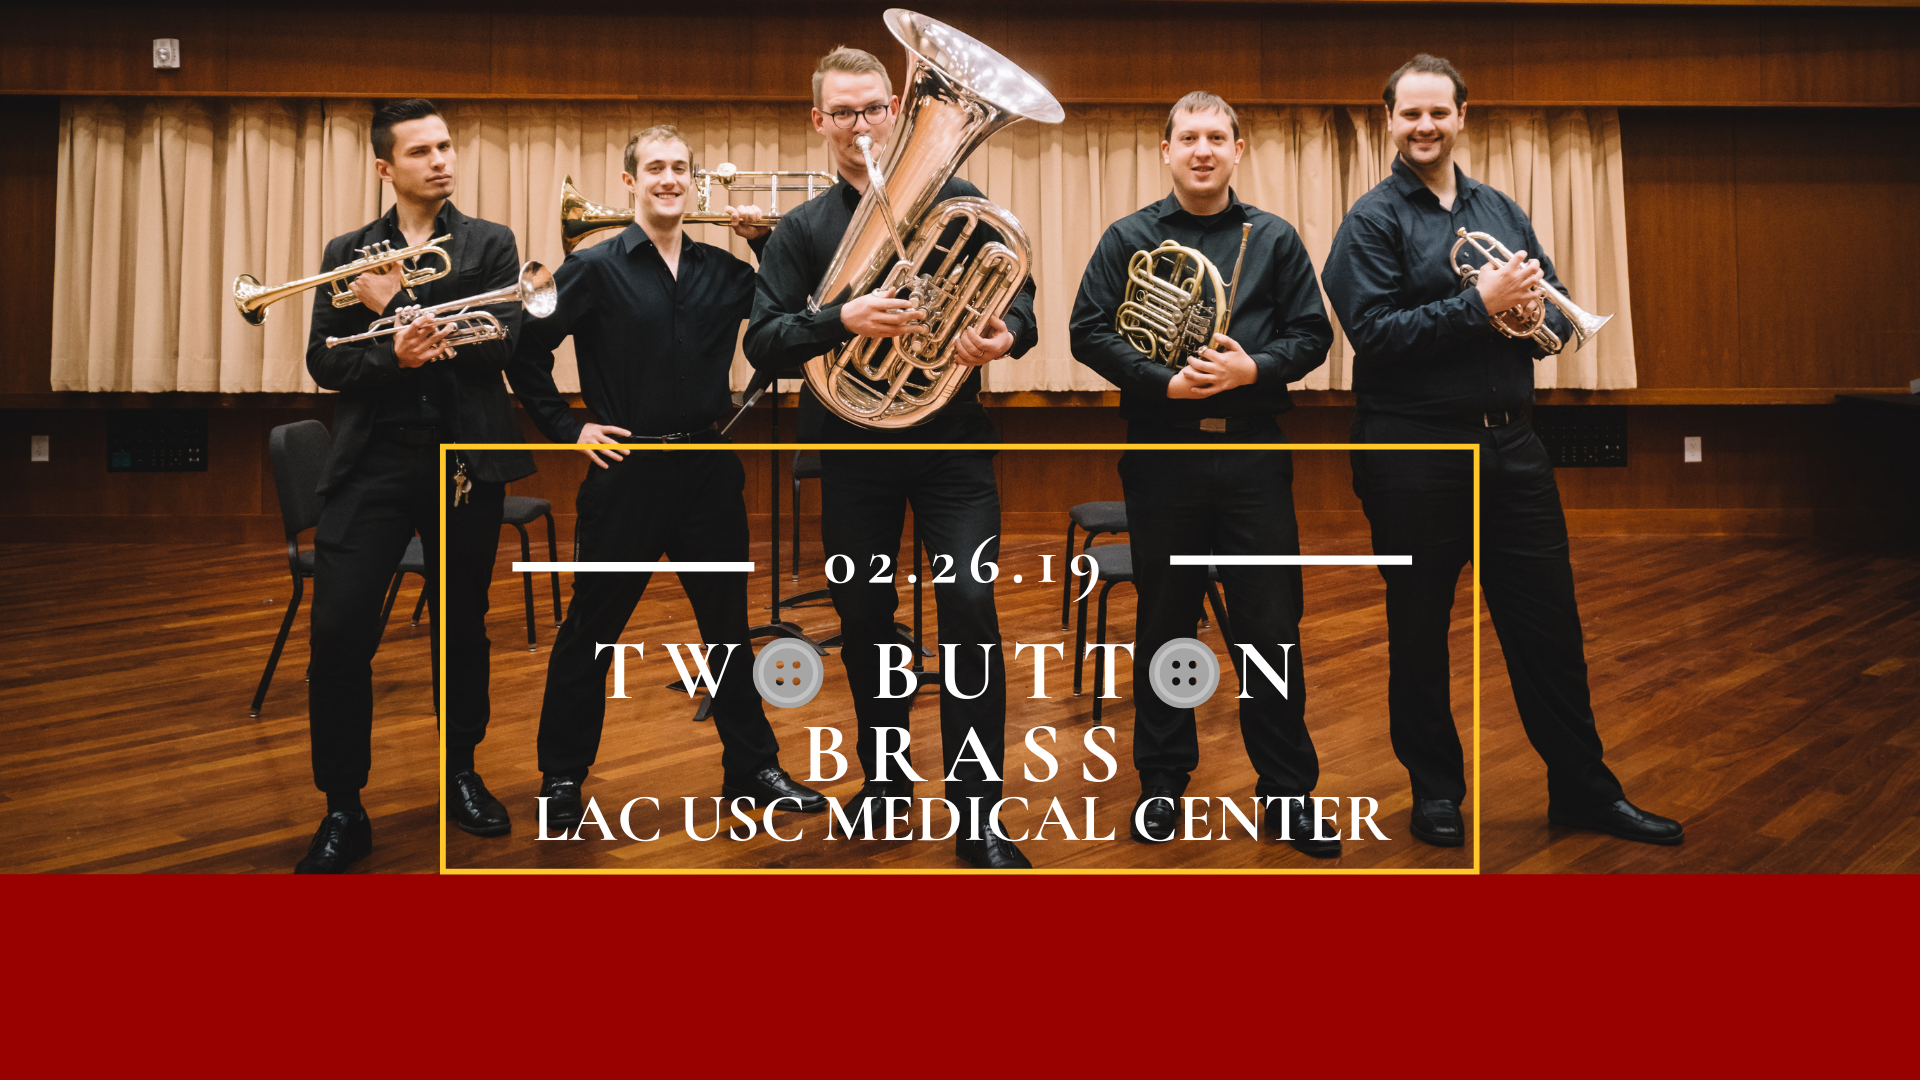 TBB @ USC+LAC Medical Center - Tuesday, February 26, 2019